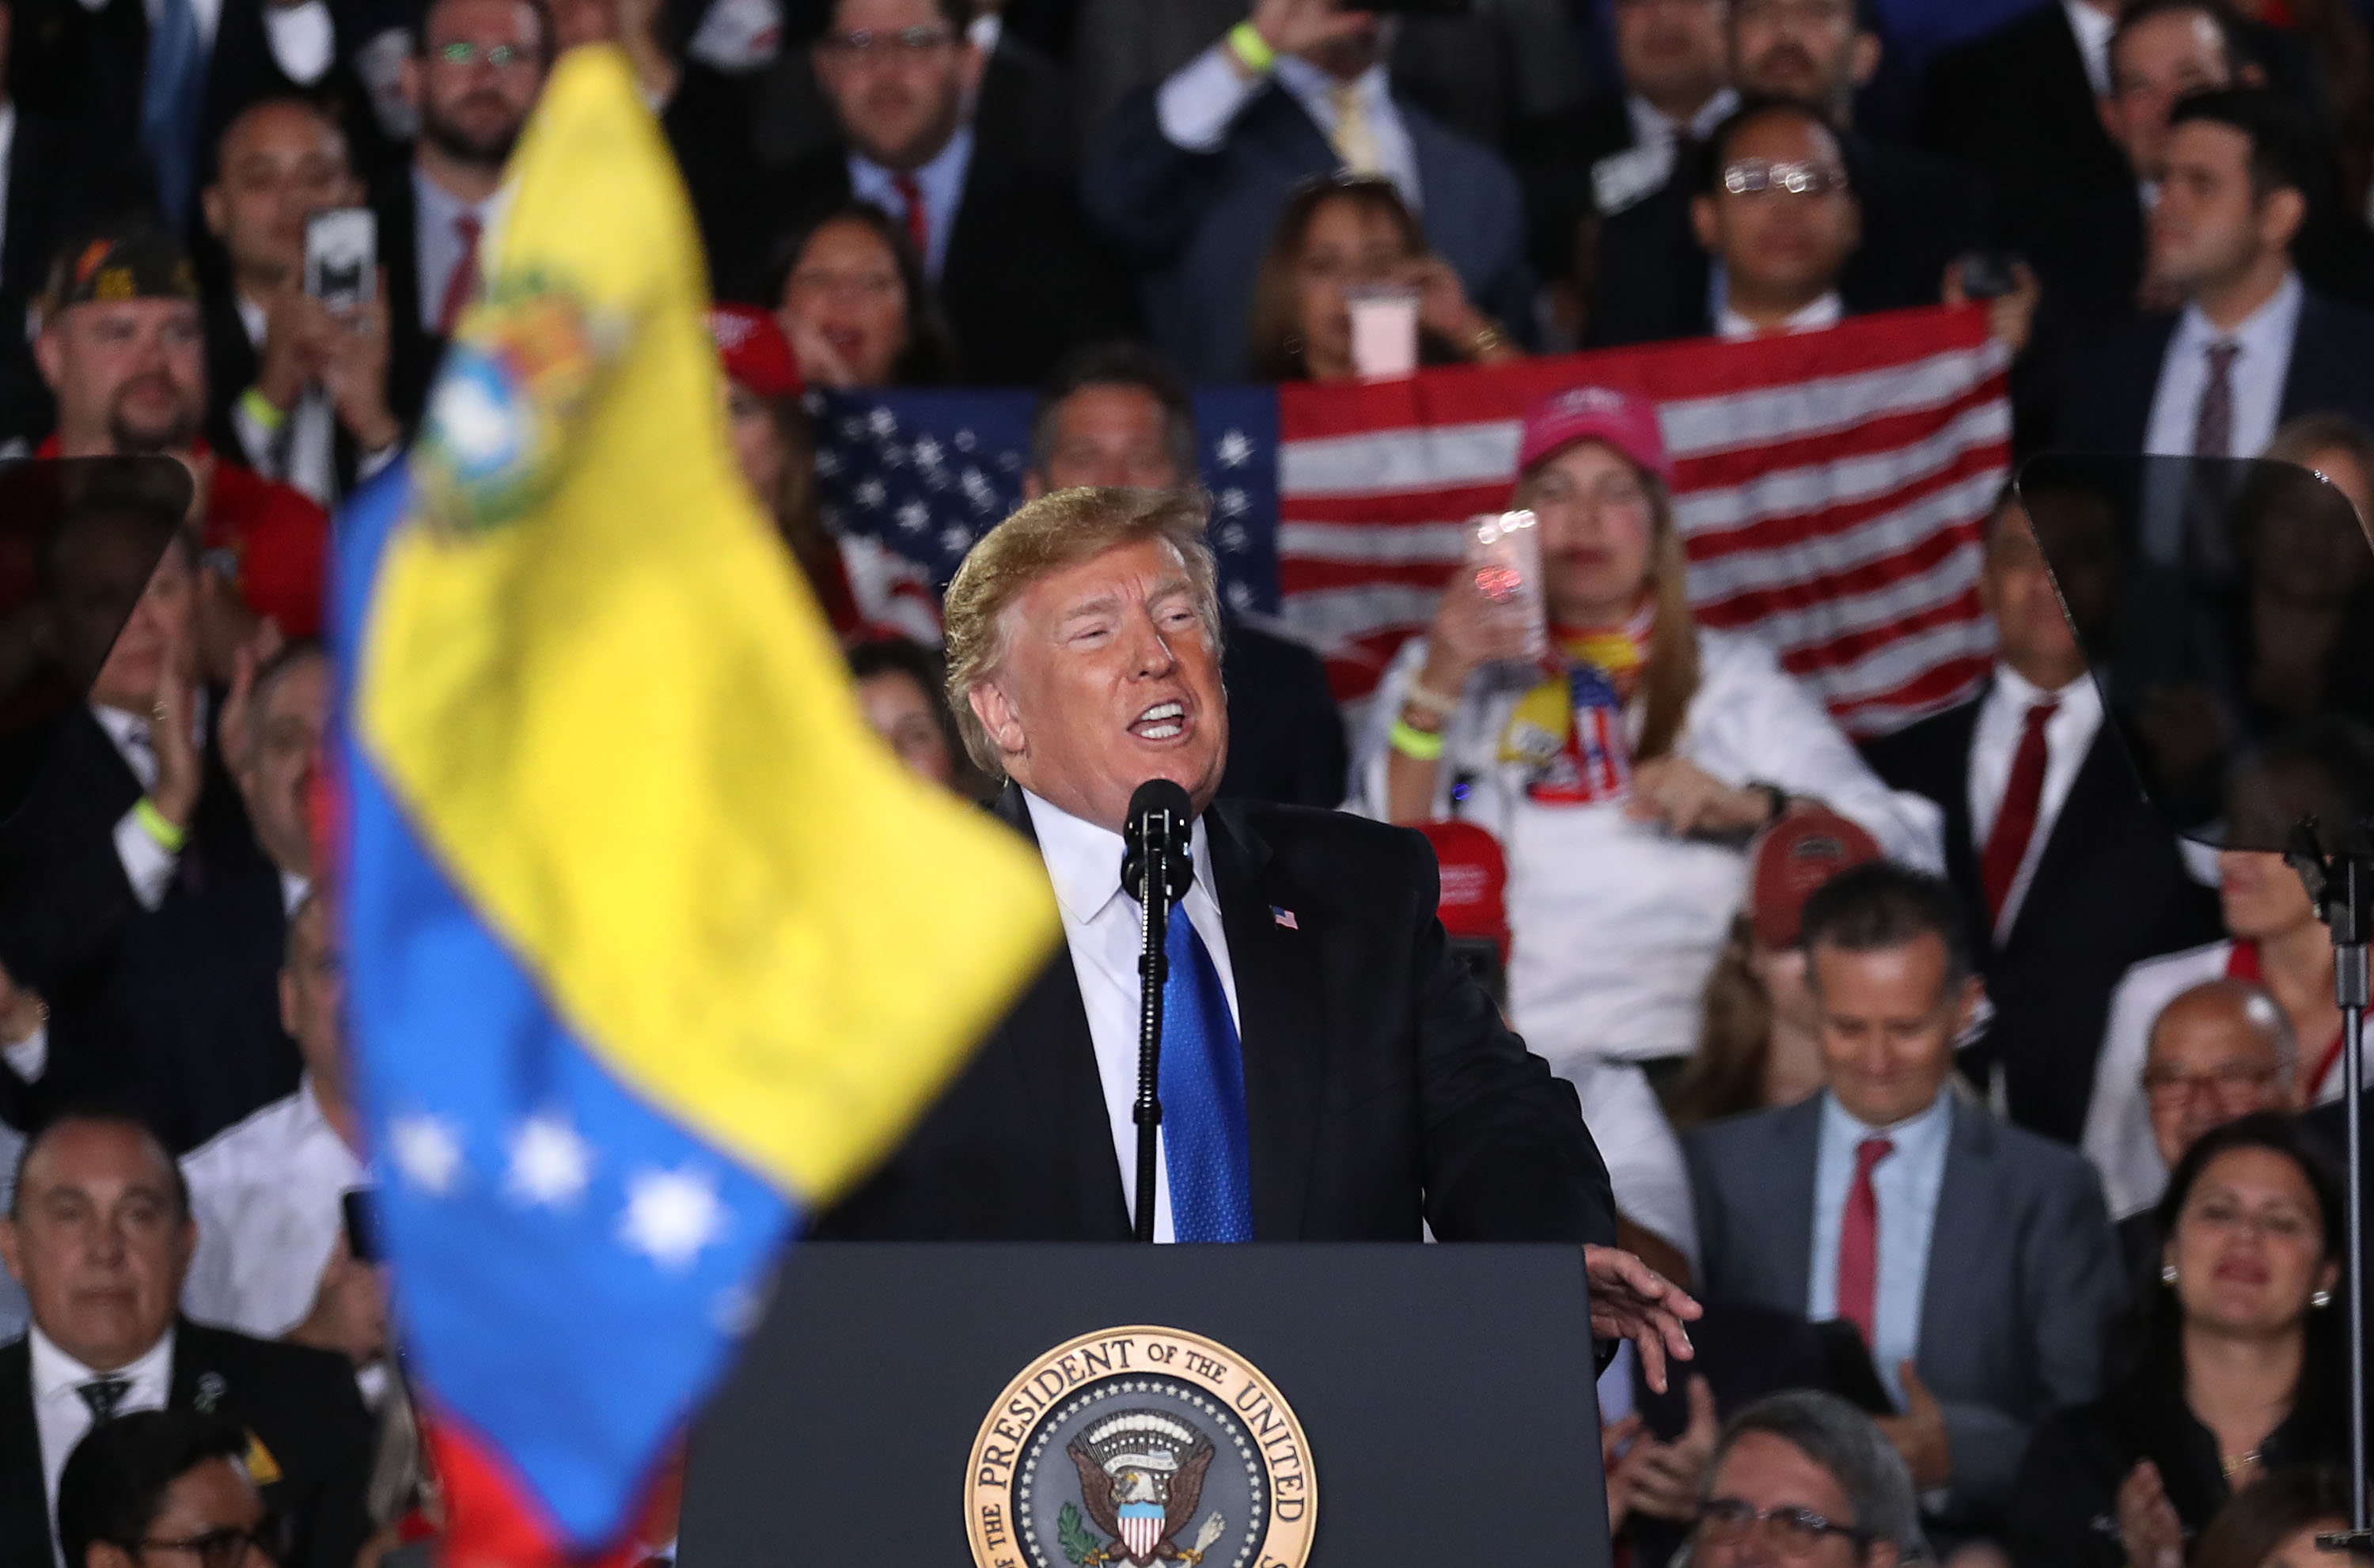 Trump is exploiting the Venezuela crisis in order to win the 2020 presidential election